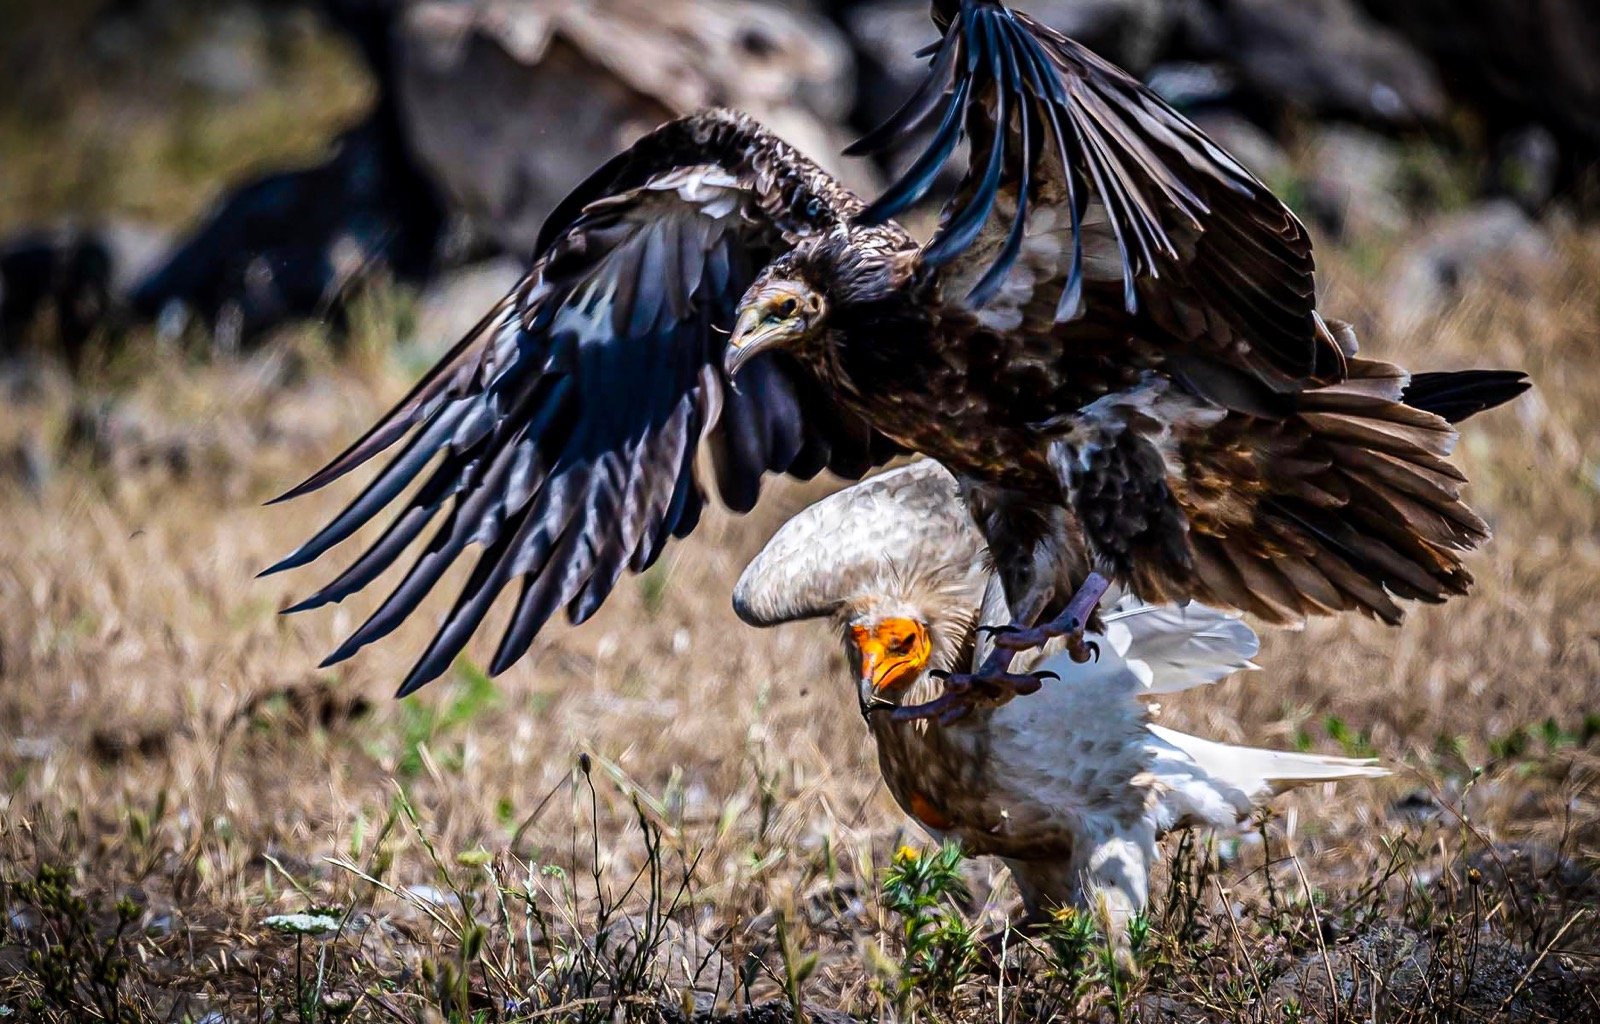 Egyptian vultures just one of the majestic bird our group will be photographing in 2020